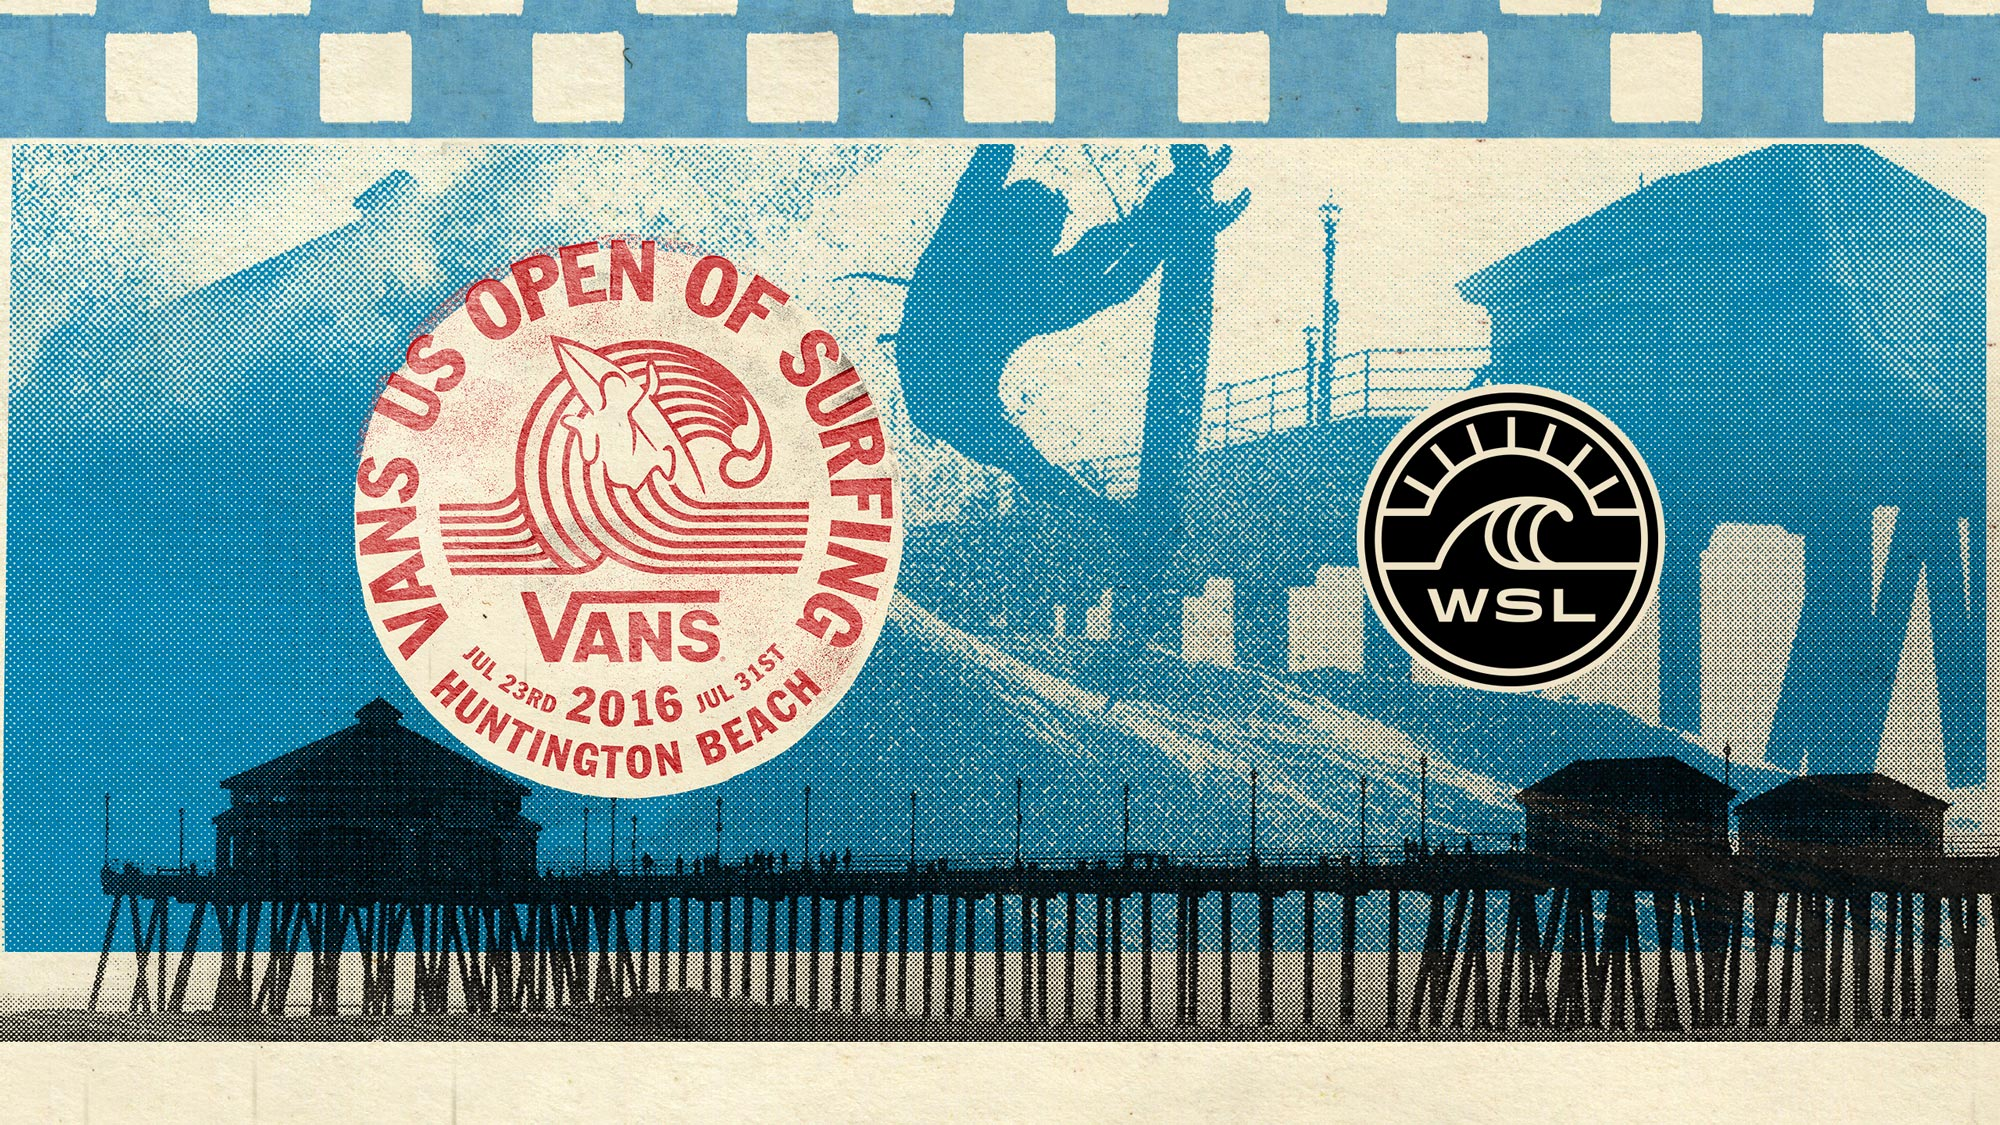 vans off the wall us open